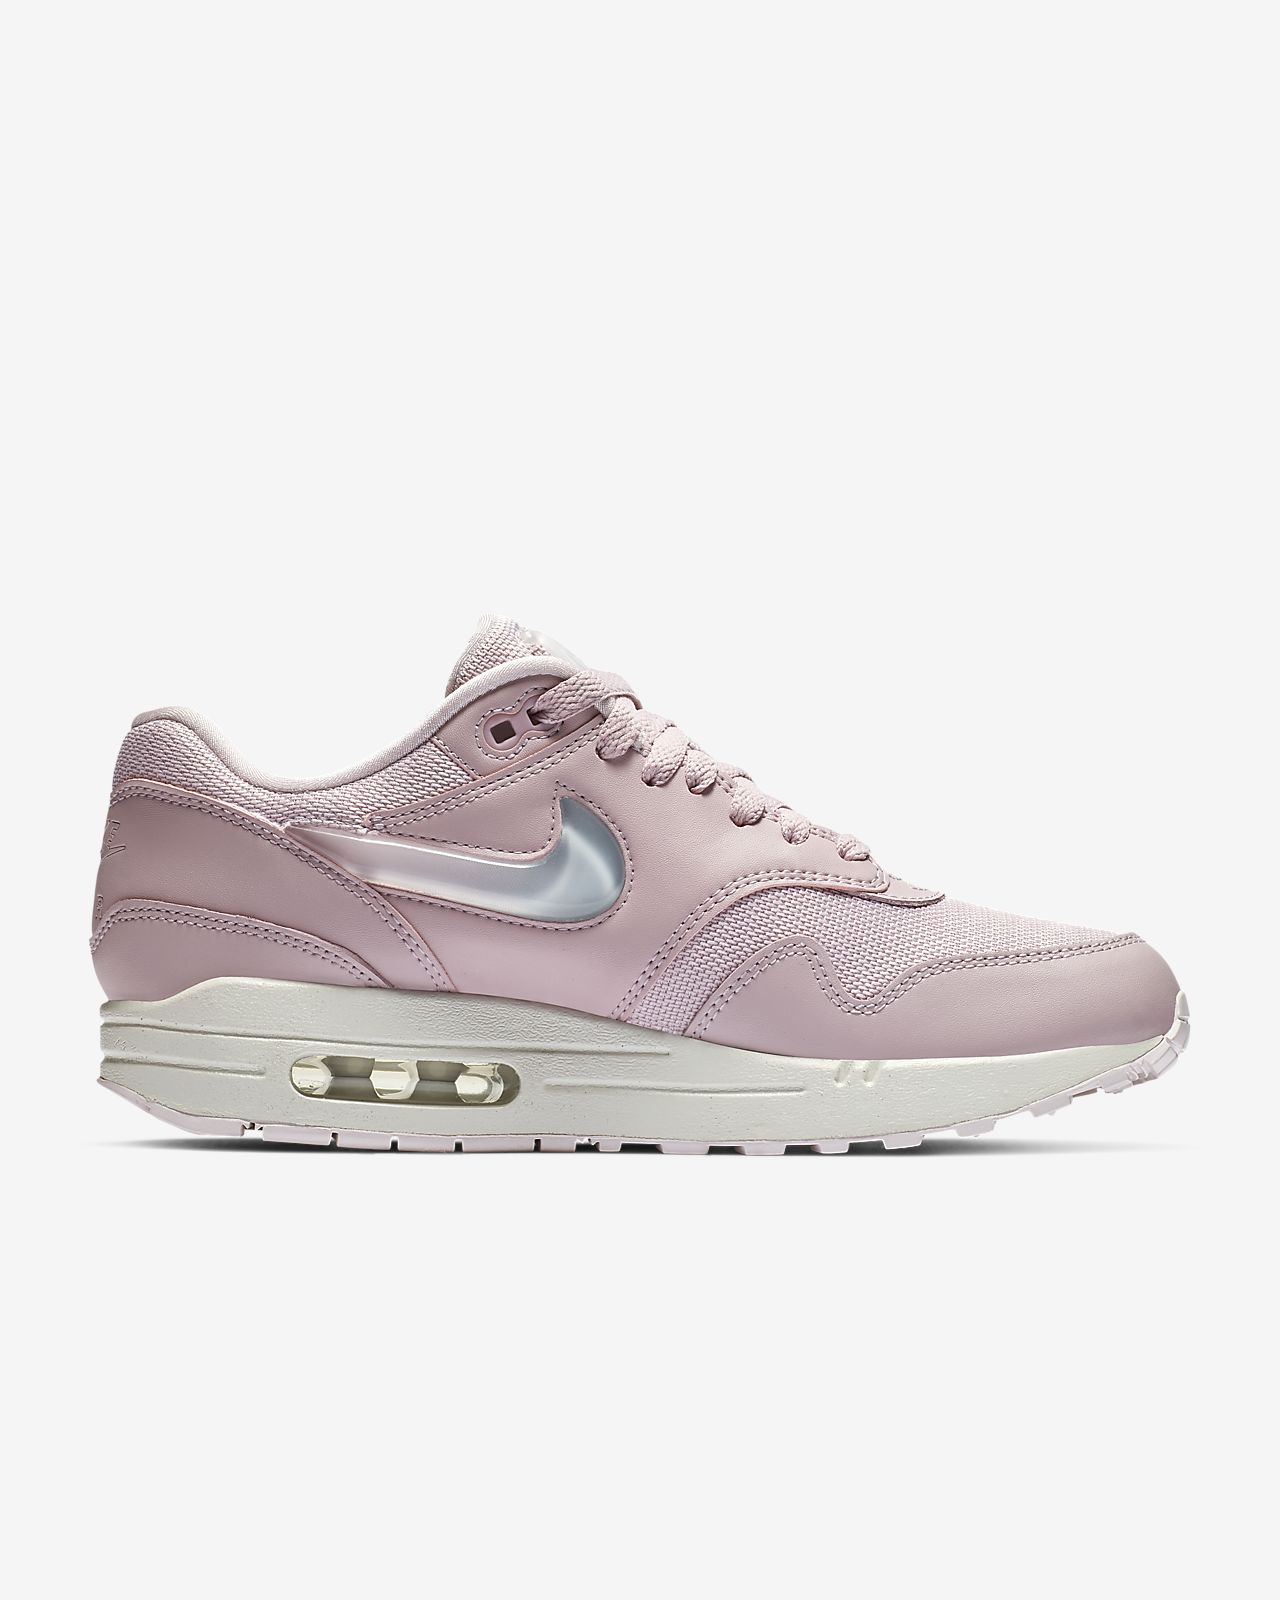 half off 0b08b 45111 ... Nike Air Max 1 Premium Women s Shoe